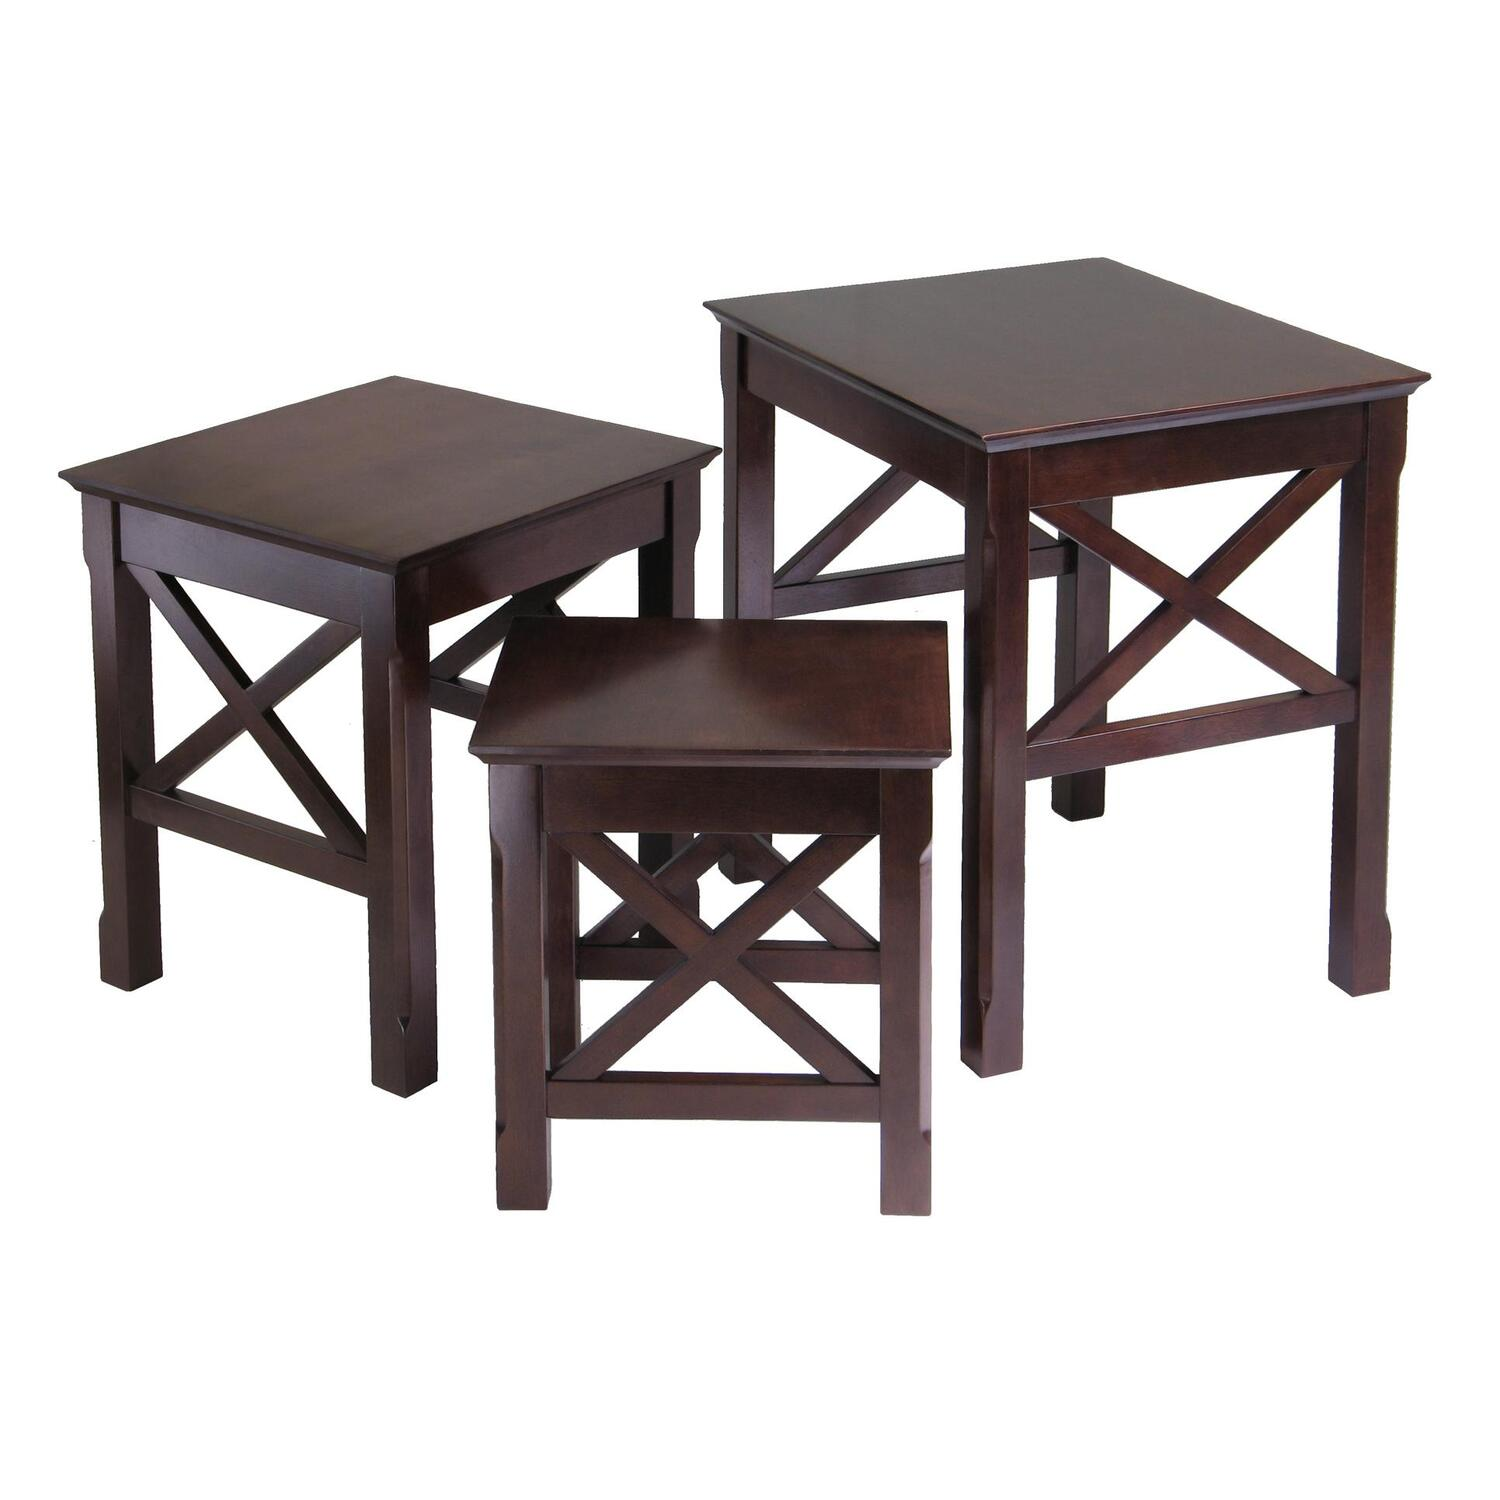 Stacking End Tables Winsome Xola 3pc Nesting Table By Oj Commerce 40333 113 23